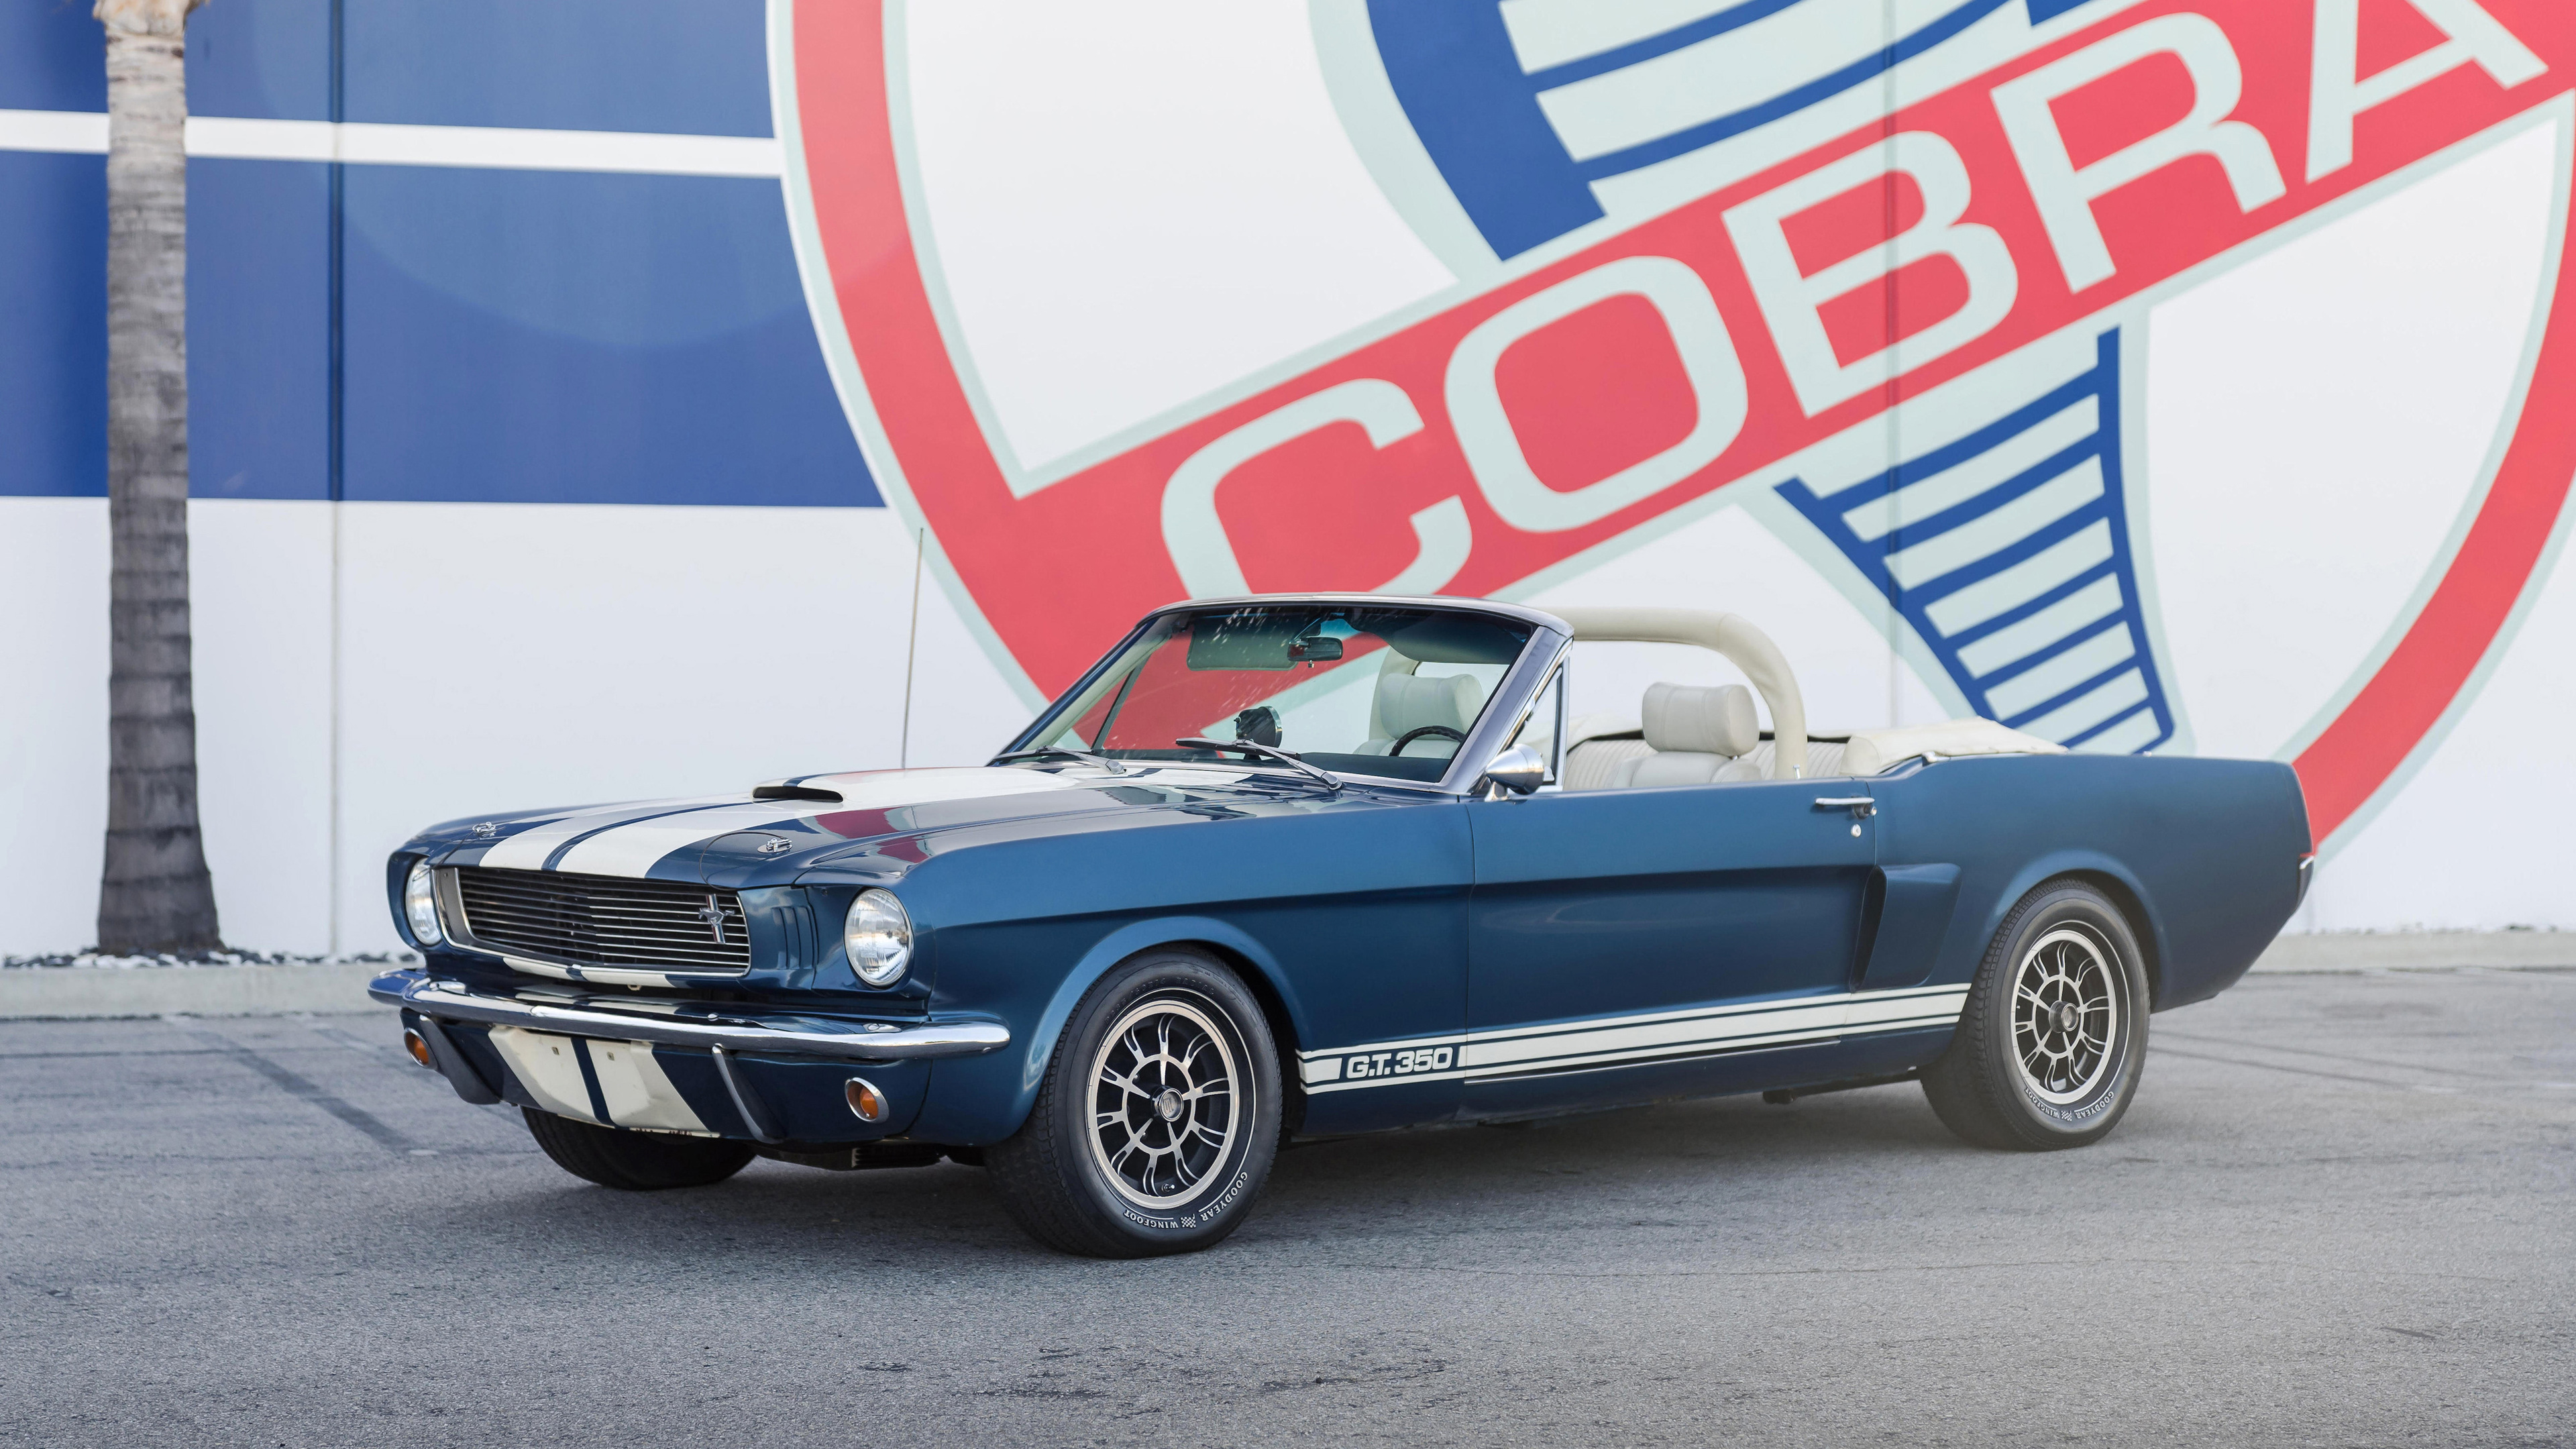 1966 shelby gt350 continuation series convertible 1539111582 - 1966 Shelby GT350 Continuation Series Convertible - vintage cars wallpapers, shelby wallpapers, hd-wallpapers, cars wallpapers, 4k-wallpapers